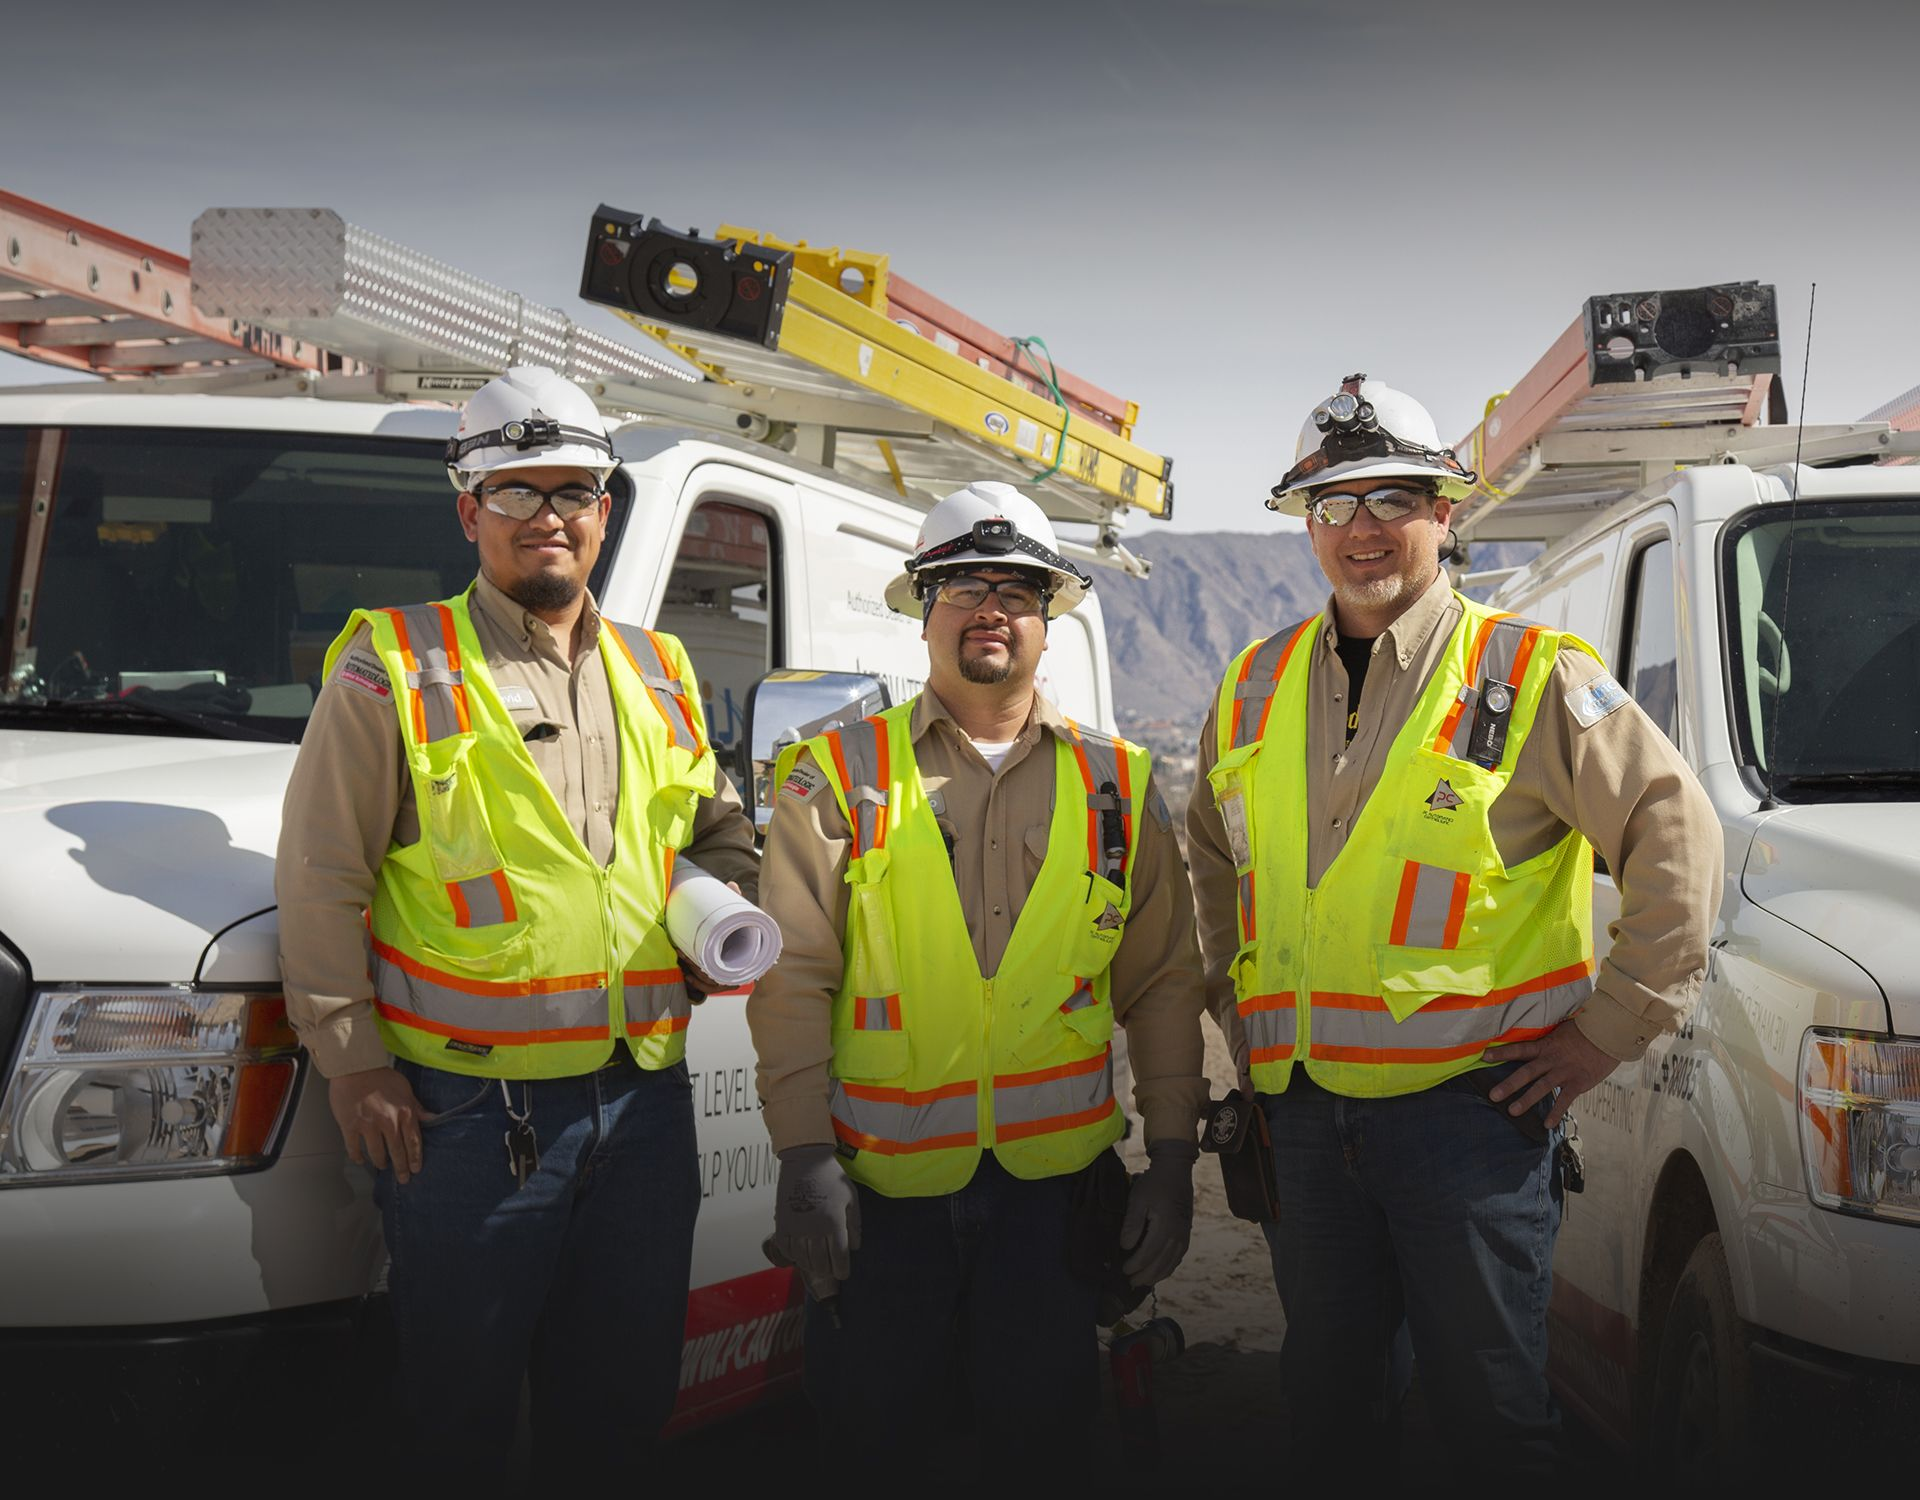 PC Automated On-site Crew